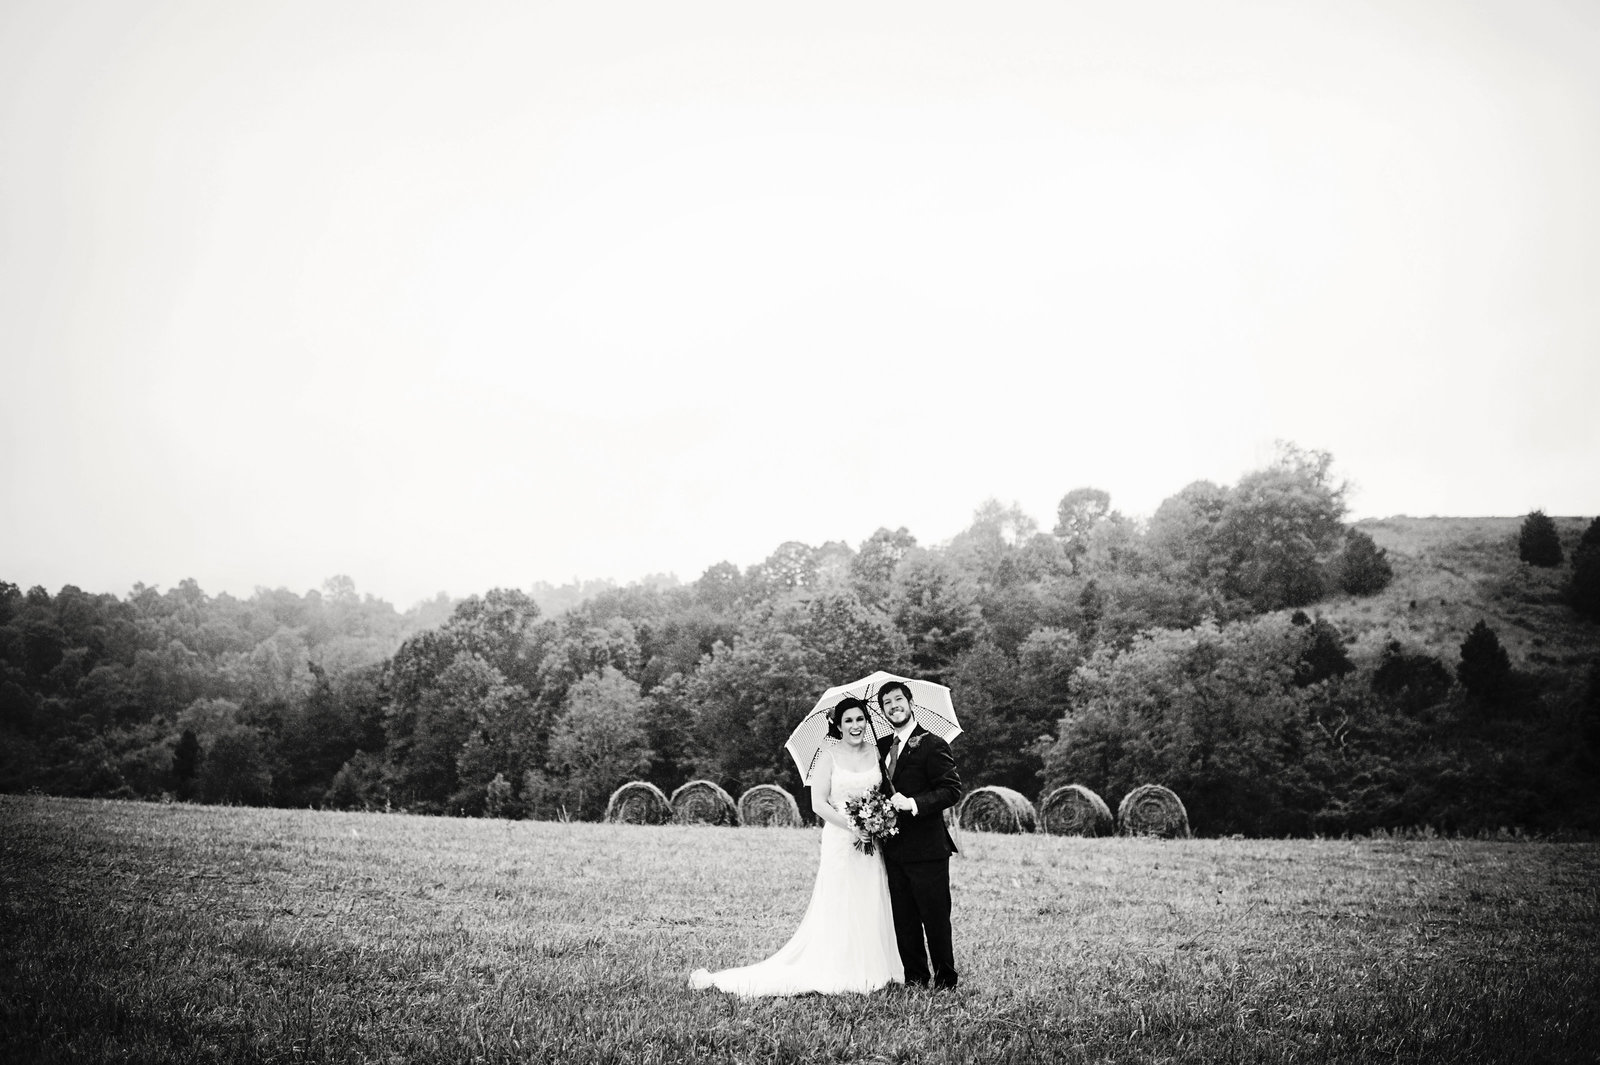 wedding portrait skyryder engagement wedding photography blacksburg roanoke charlottesville lexington radford-244